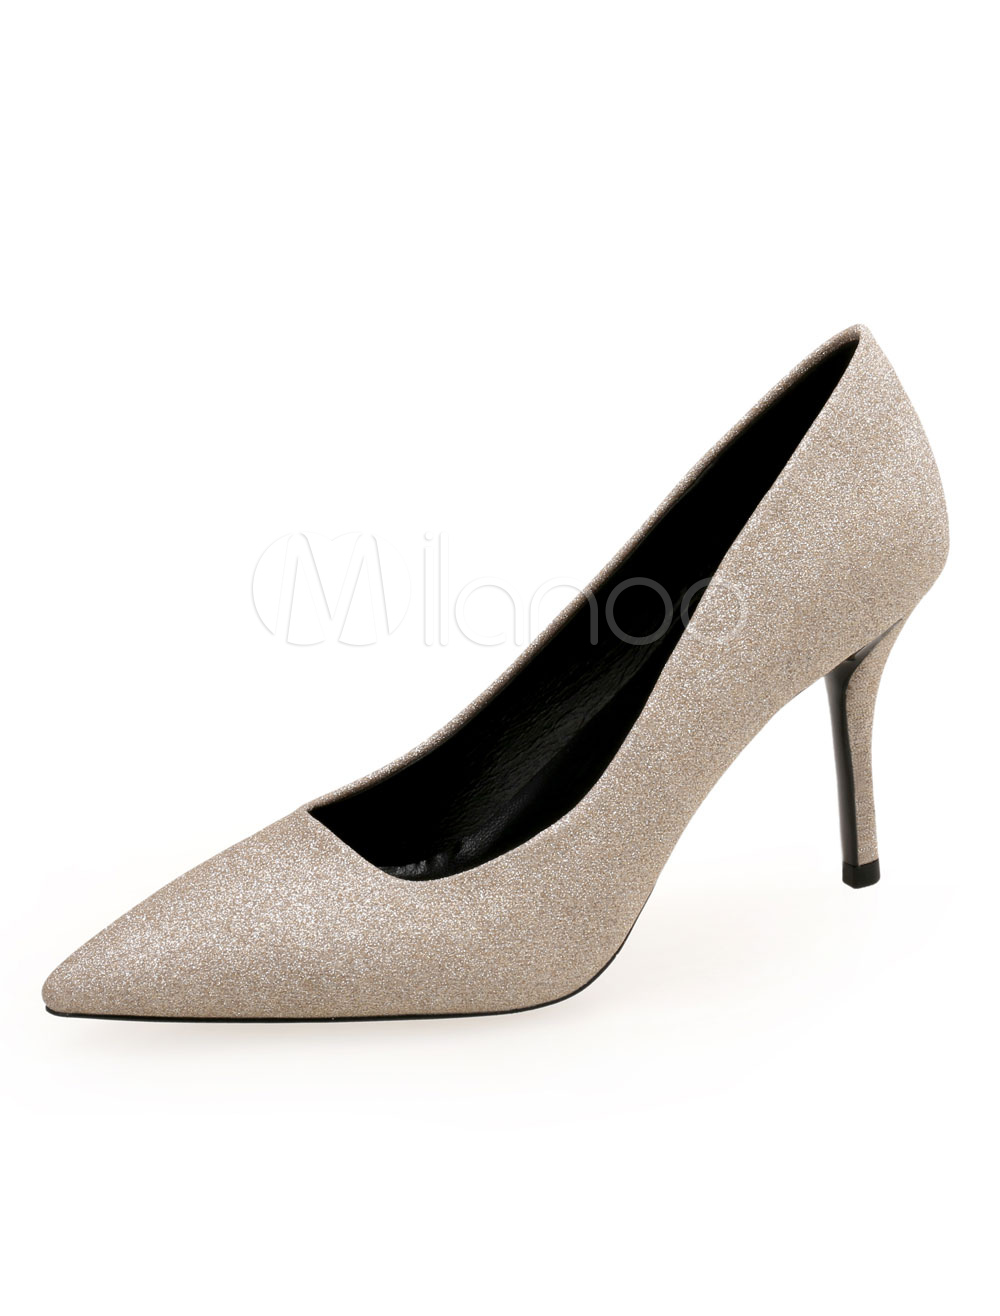 cf8fabc750b2 Women High Heels Glitter Pointed Toe Slip On Pumps Gold Party Shoes ...